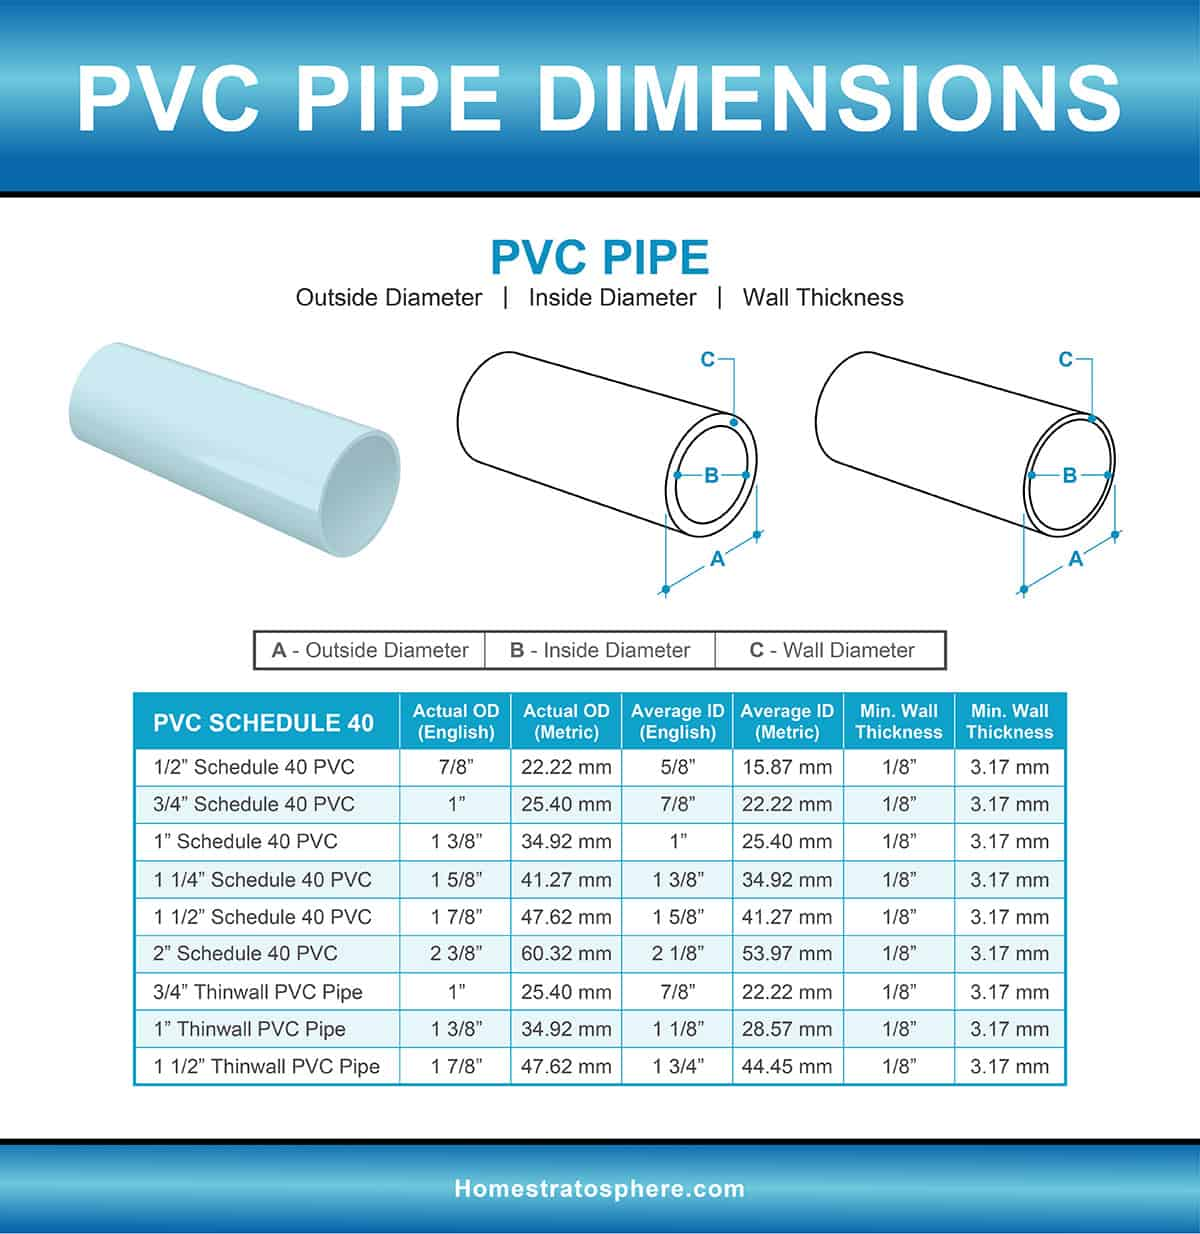 PVC Pipe Dimensions Chart and Illustration